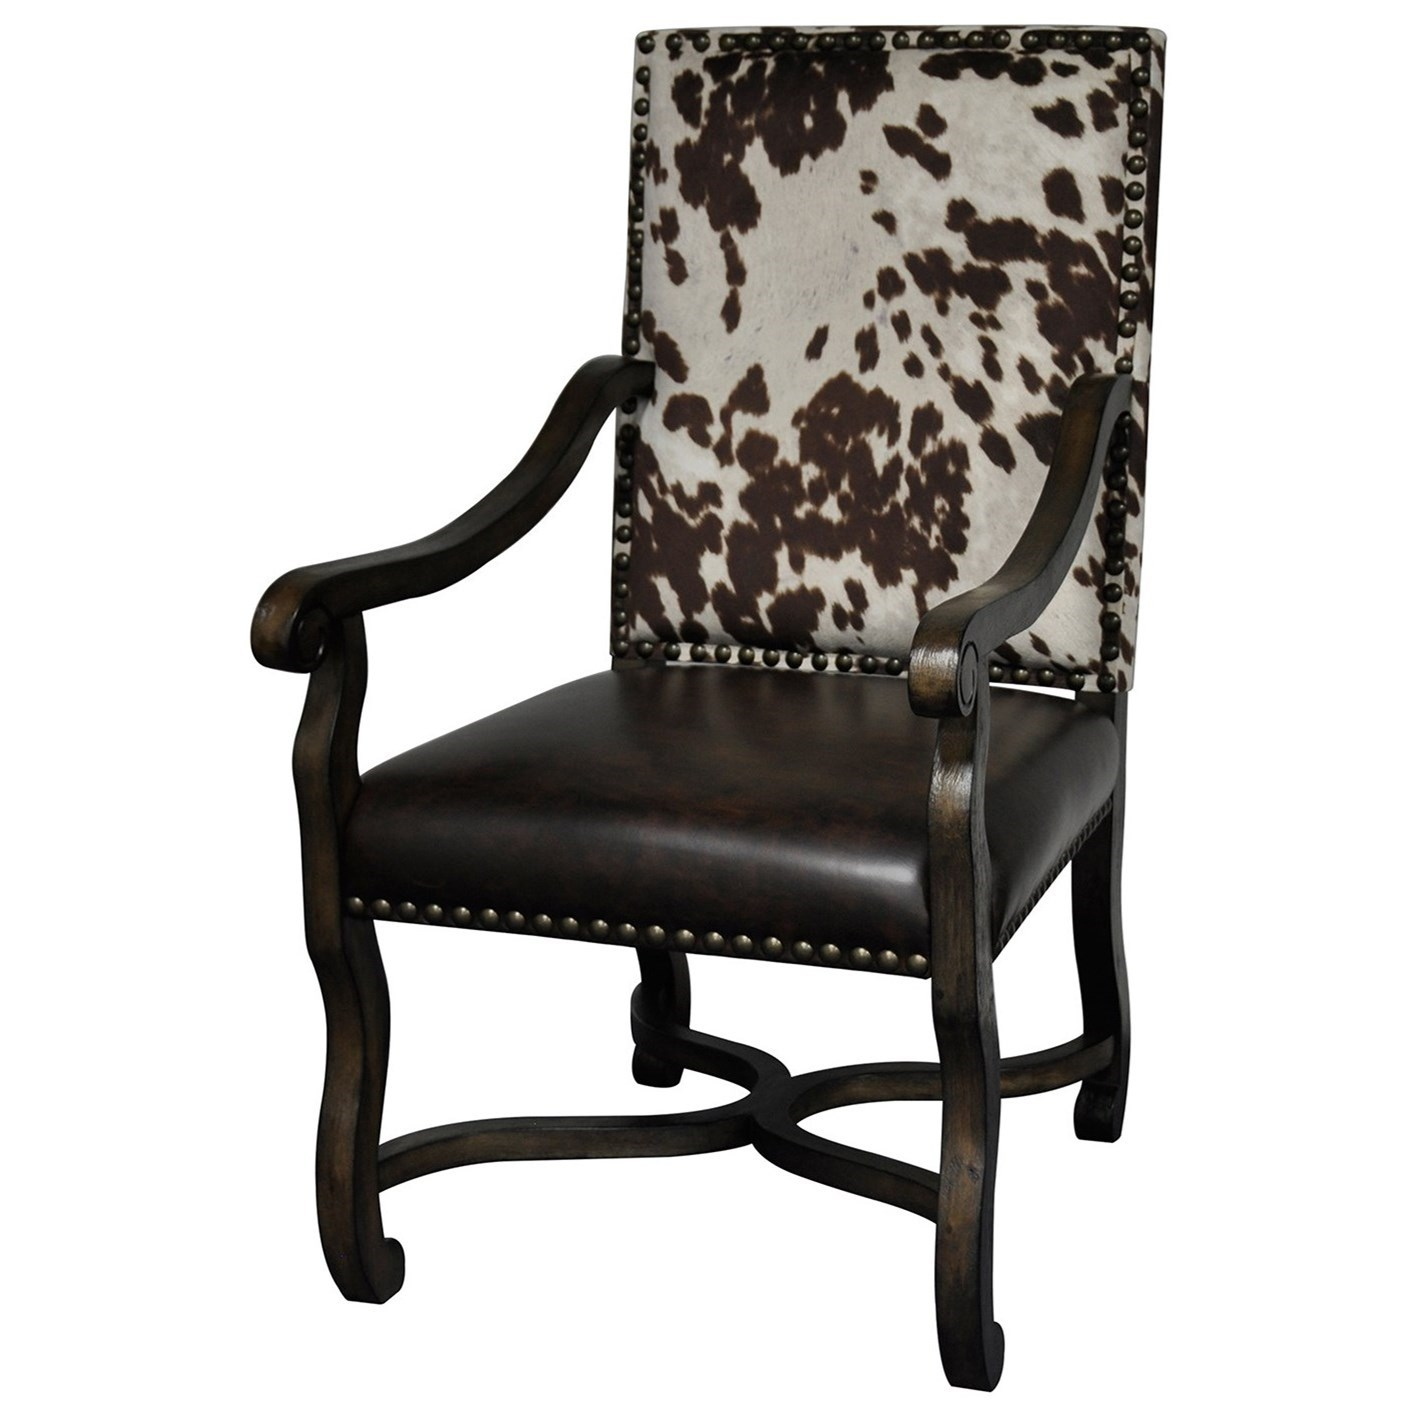 Mesquite Ranch Leather & Faux Cowhide Chair